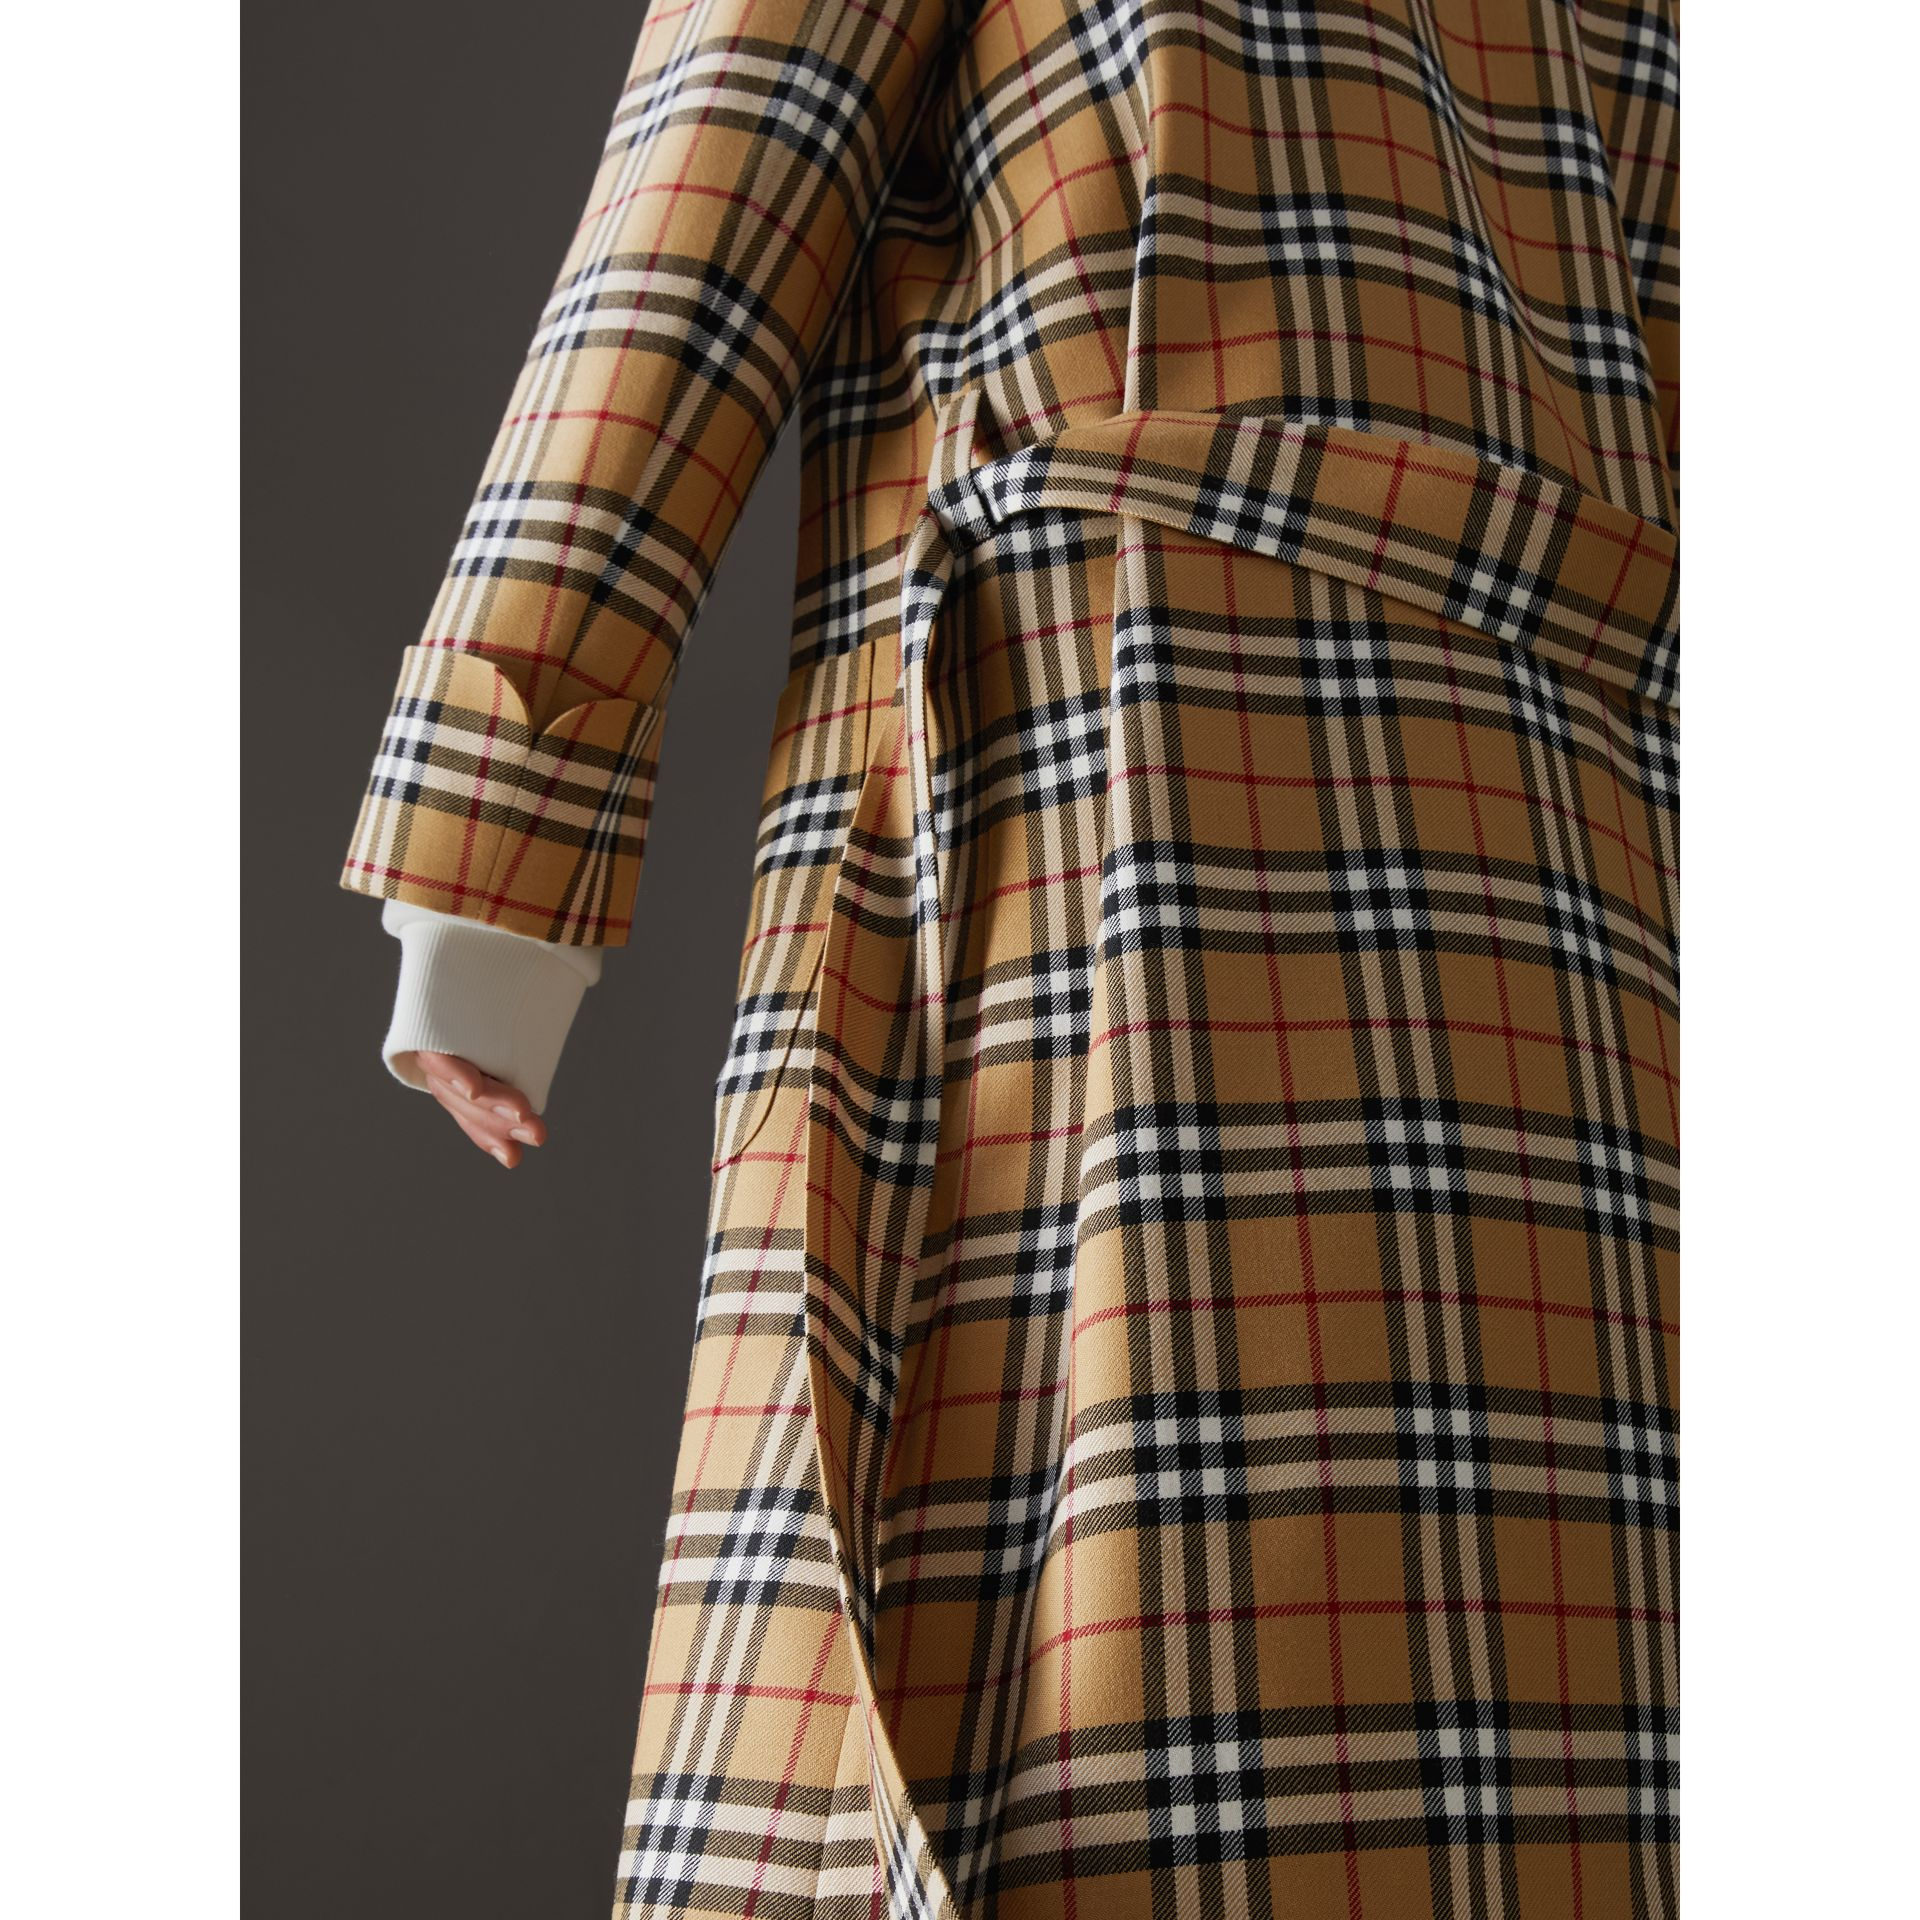 Manteau peignoir à motif Vintage check revisité (Jaune Antique) - Femme | Burberry - photo de la galerie 1